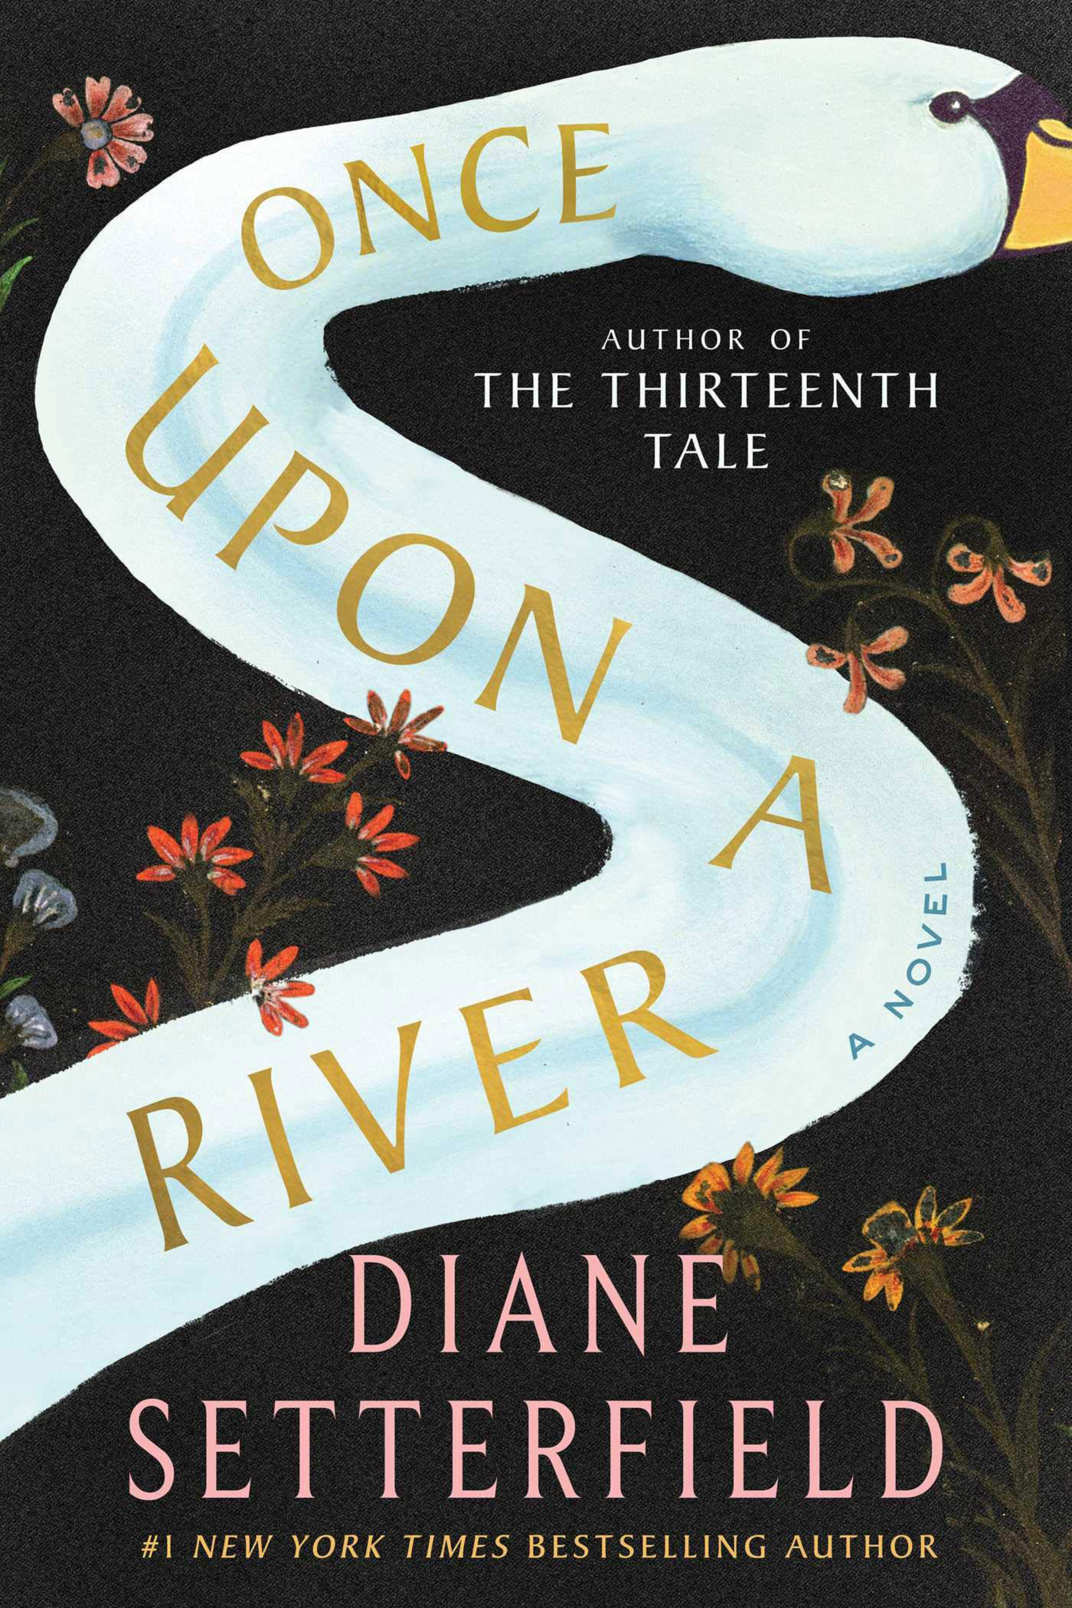 Once Upon A River, by Diane Setterfield (Atria, December 4)